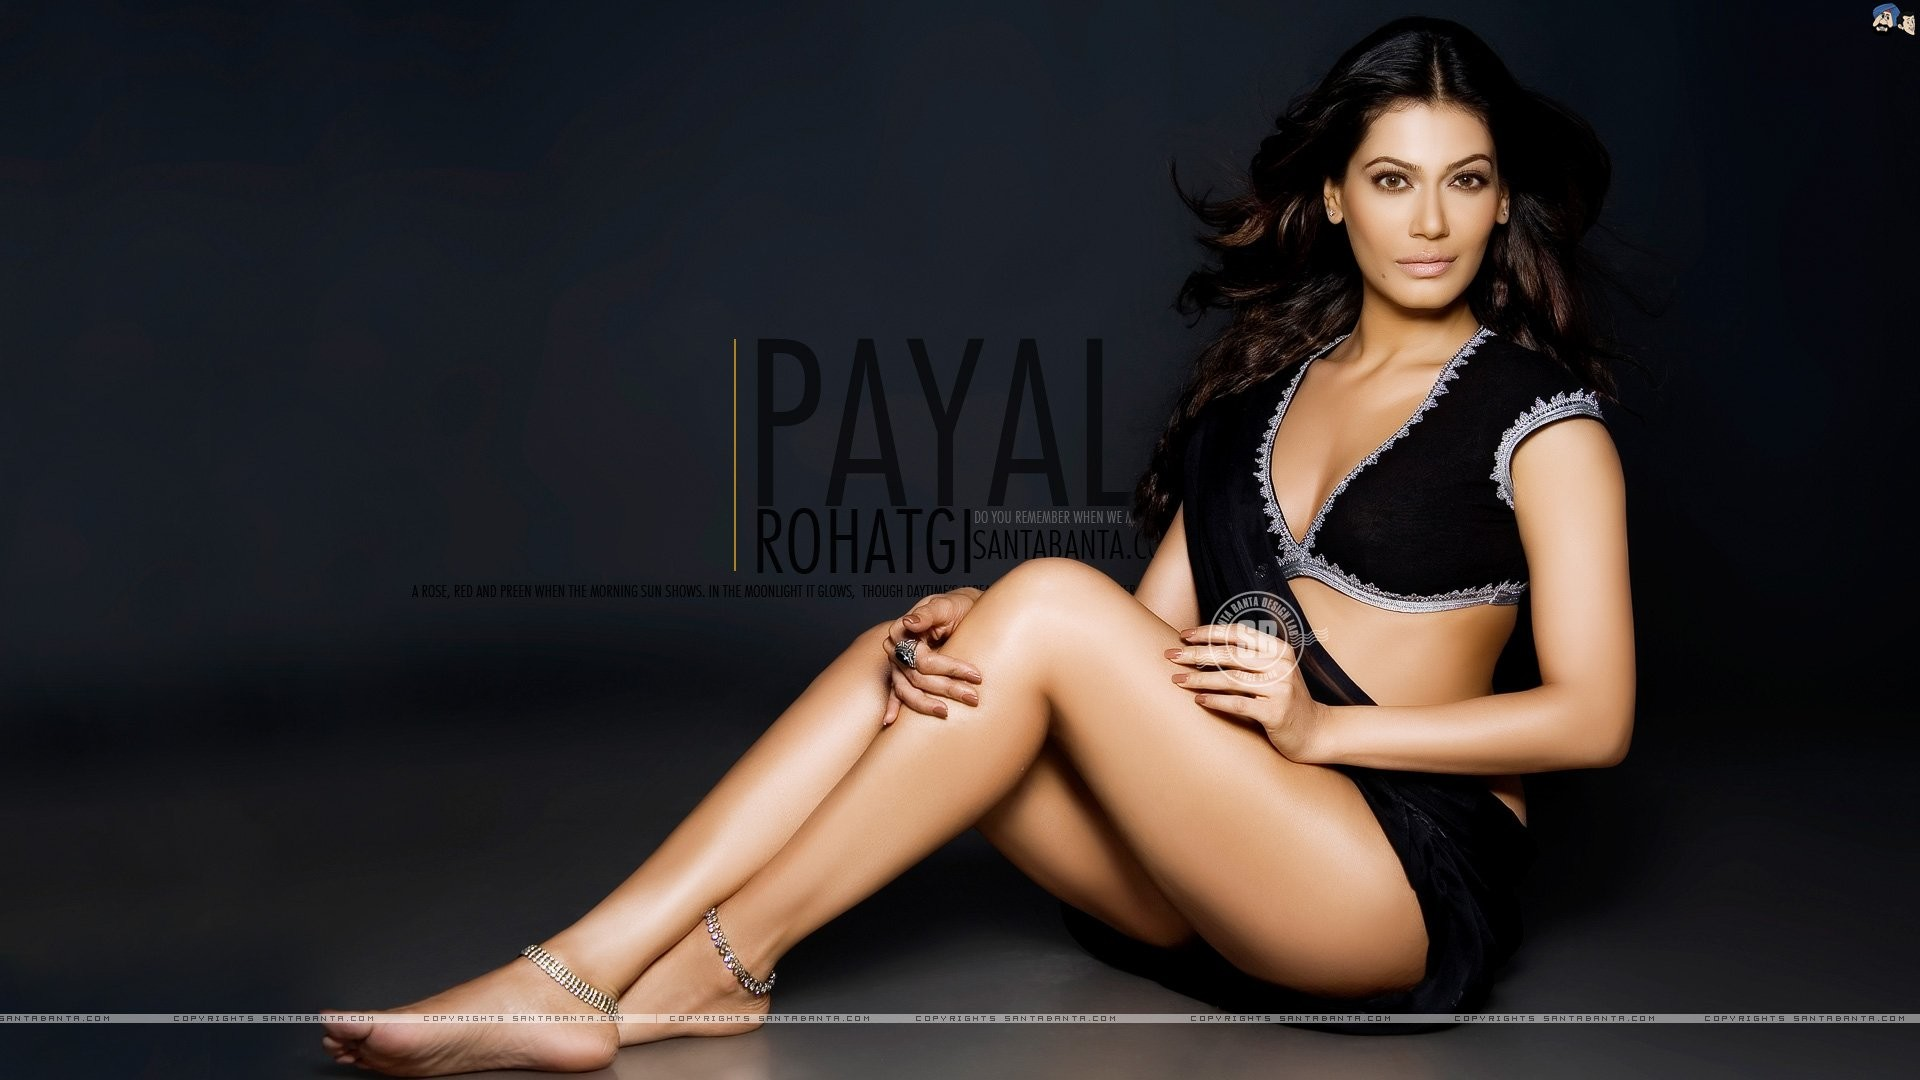 Indian Female Celebrities HD Wallpapers